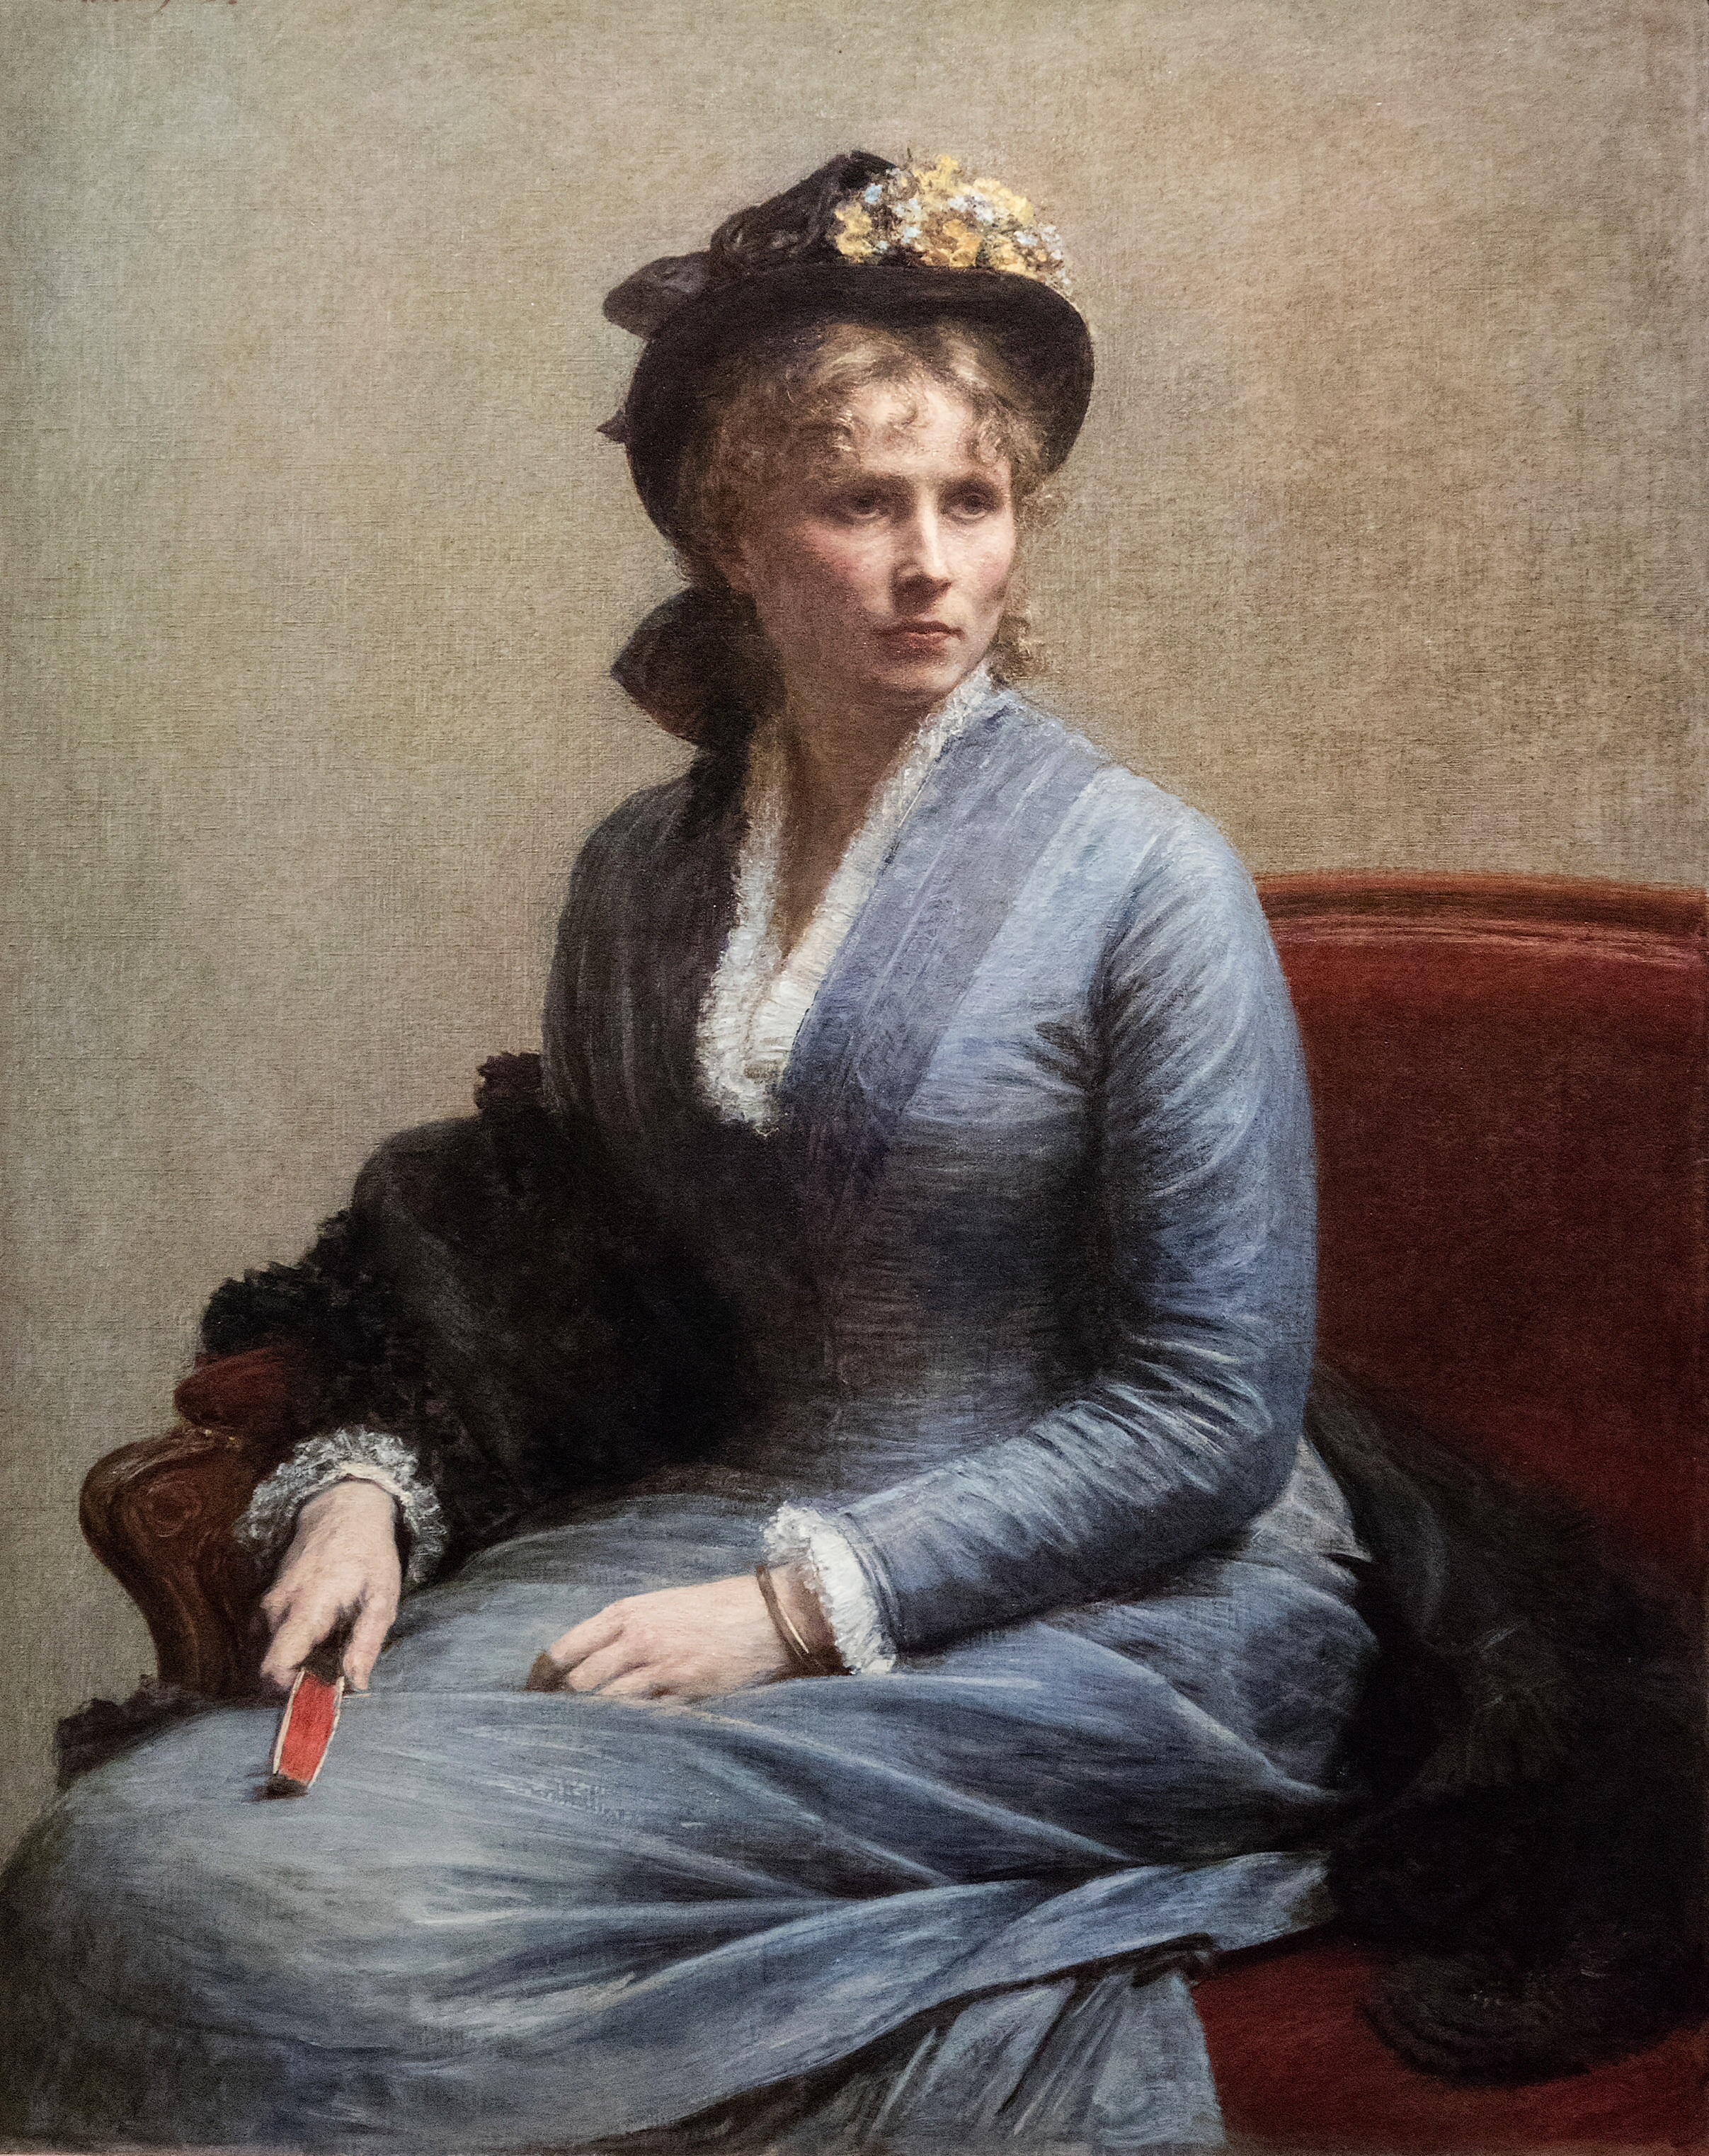 https://upload.wikimedia.org/wikipedia/commons/0/01/Charlotte_Dubourg_par_Fantin-Latour.jpg